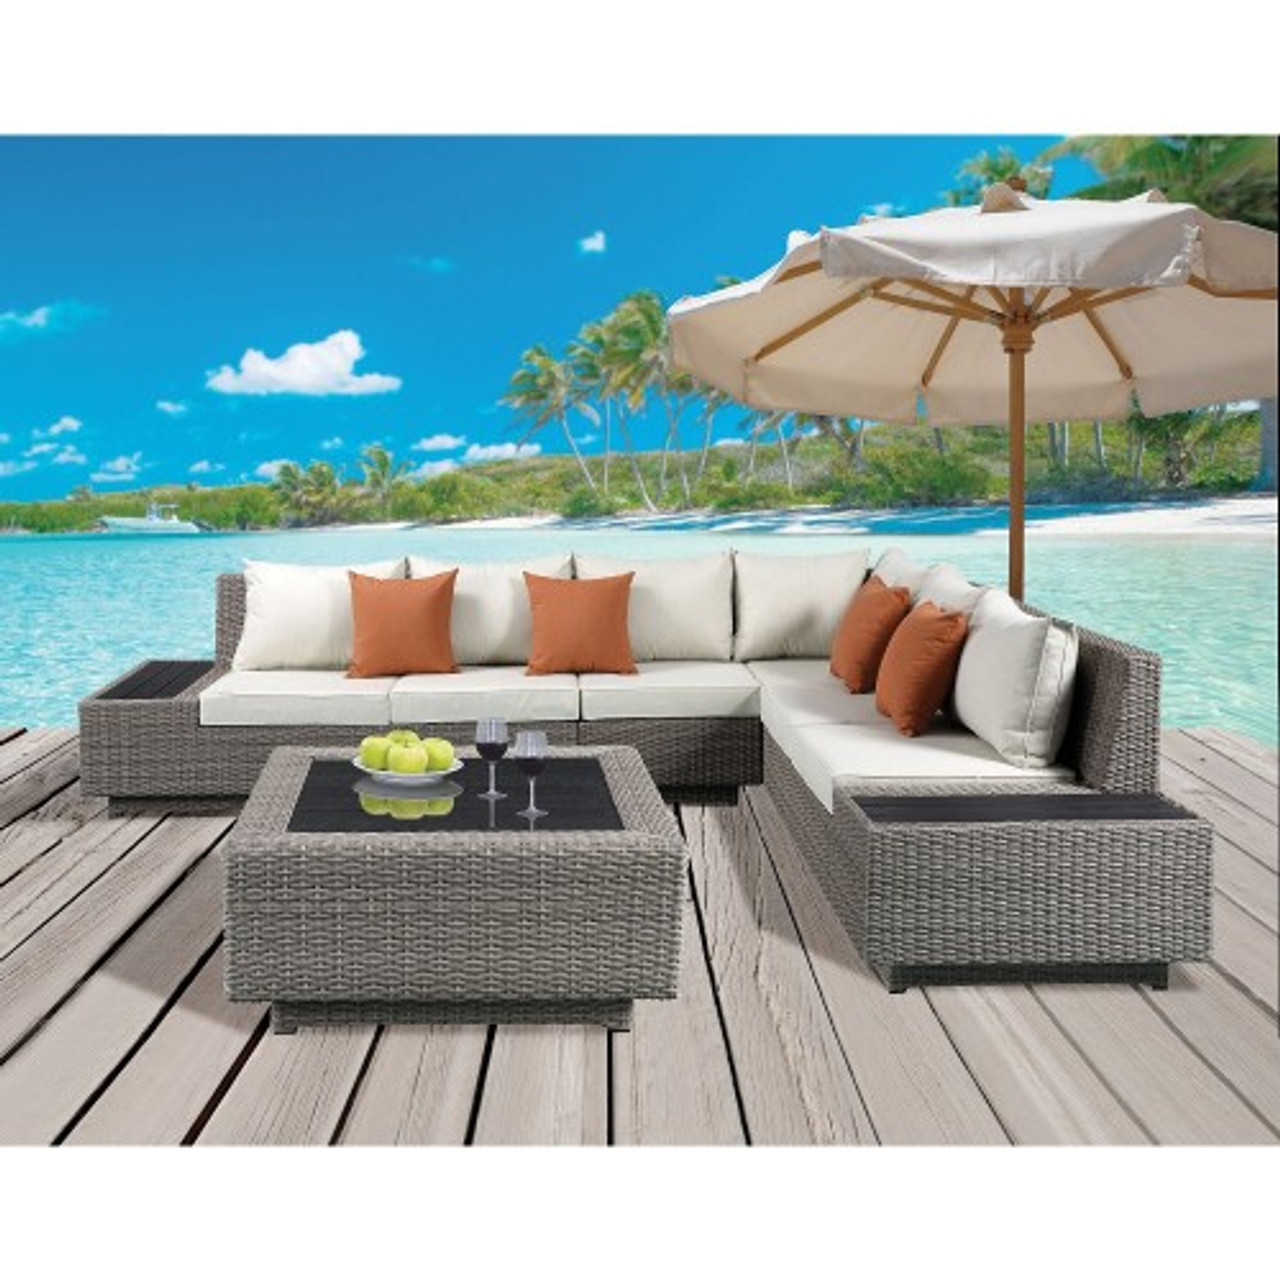 acme salena patio sectional cocktail table in beige fabric gray wicker